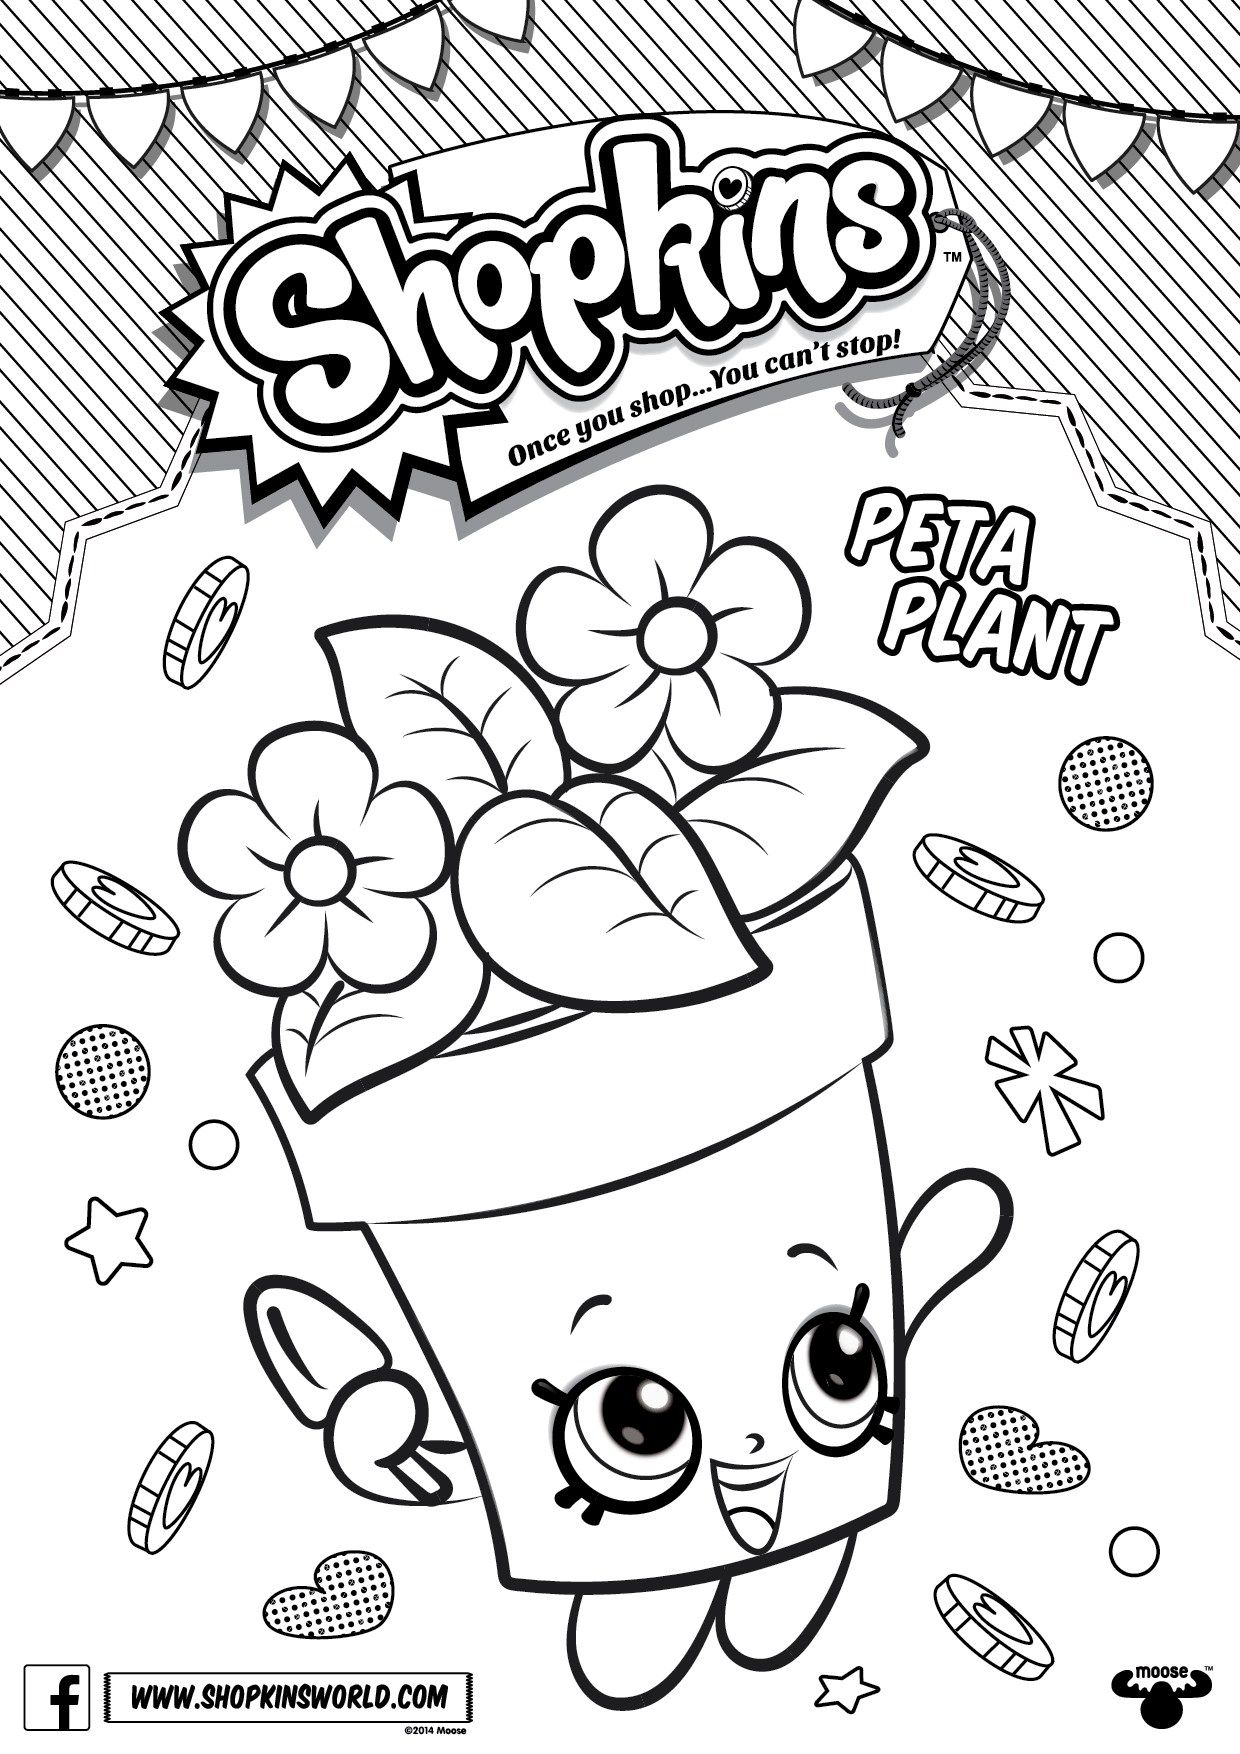 1240x1754 Shopkins Coloring Pages Season Peta Plant Printables